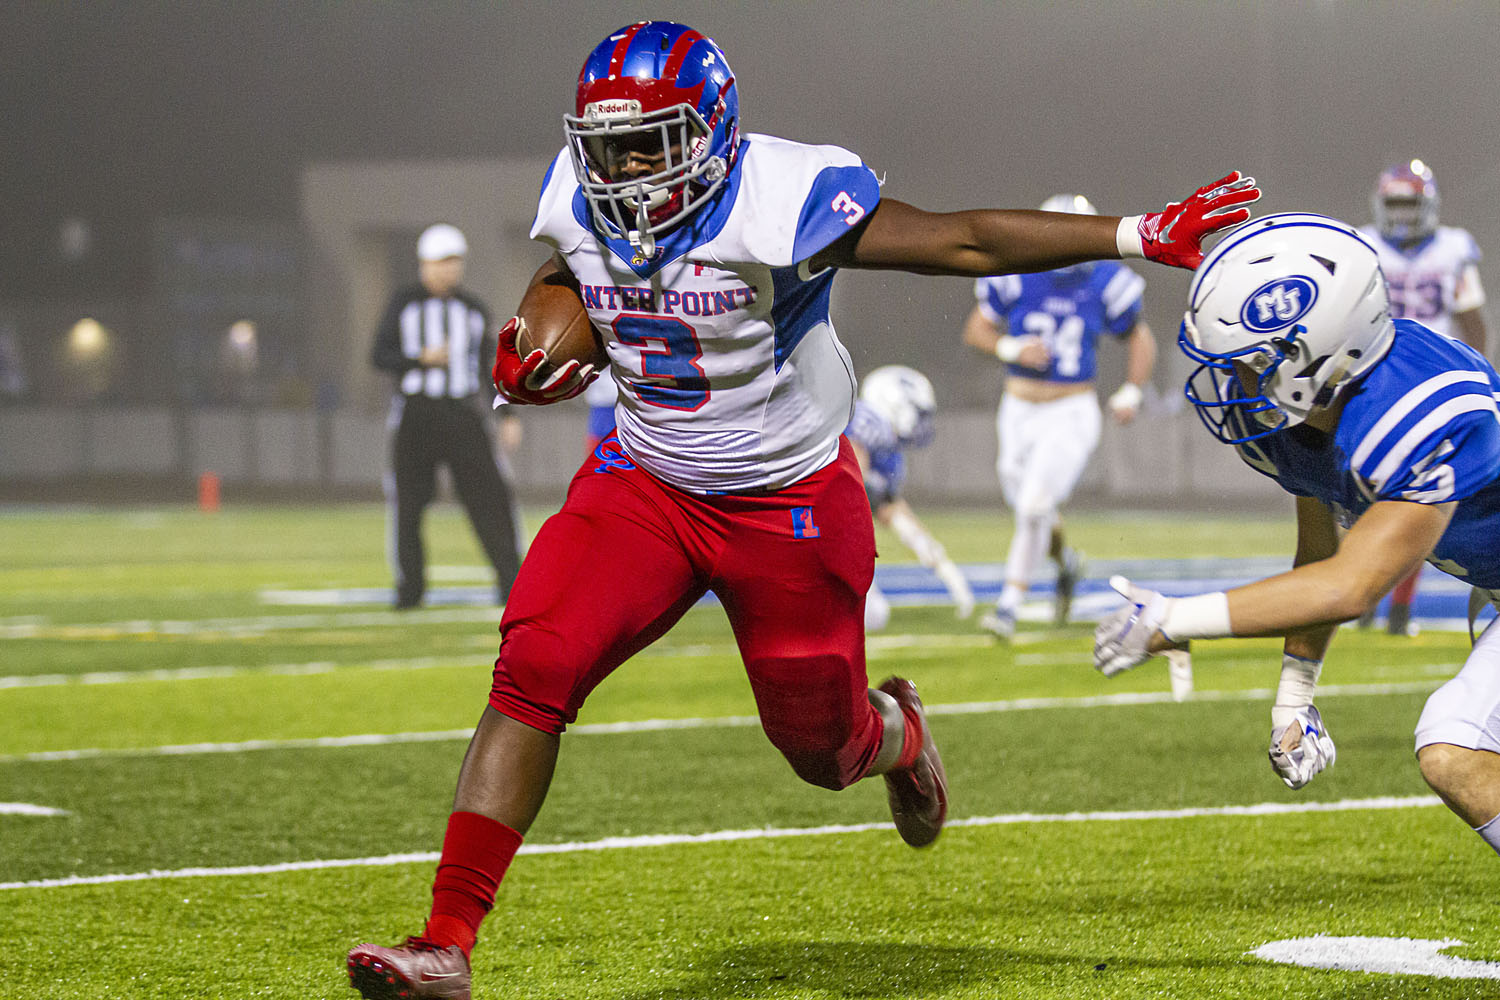 Center Point's run ends with loss to Mortimer Jordan in quarterfinals, concludes stellar season